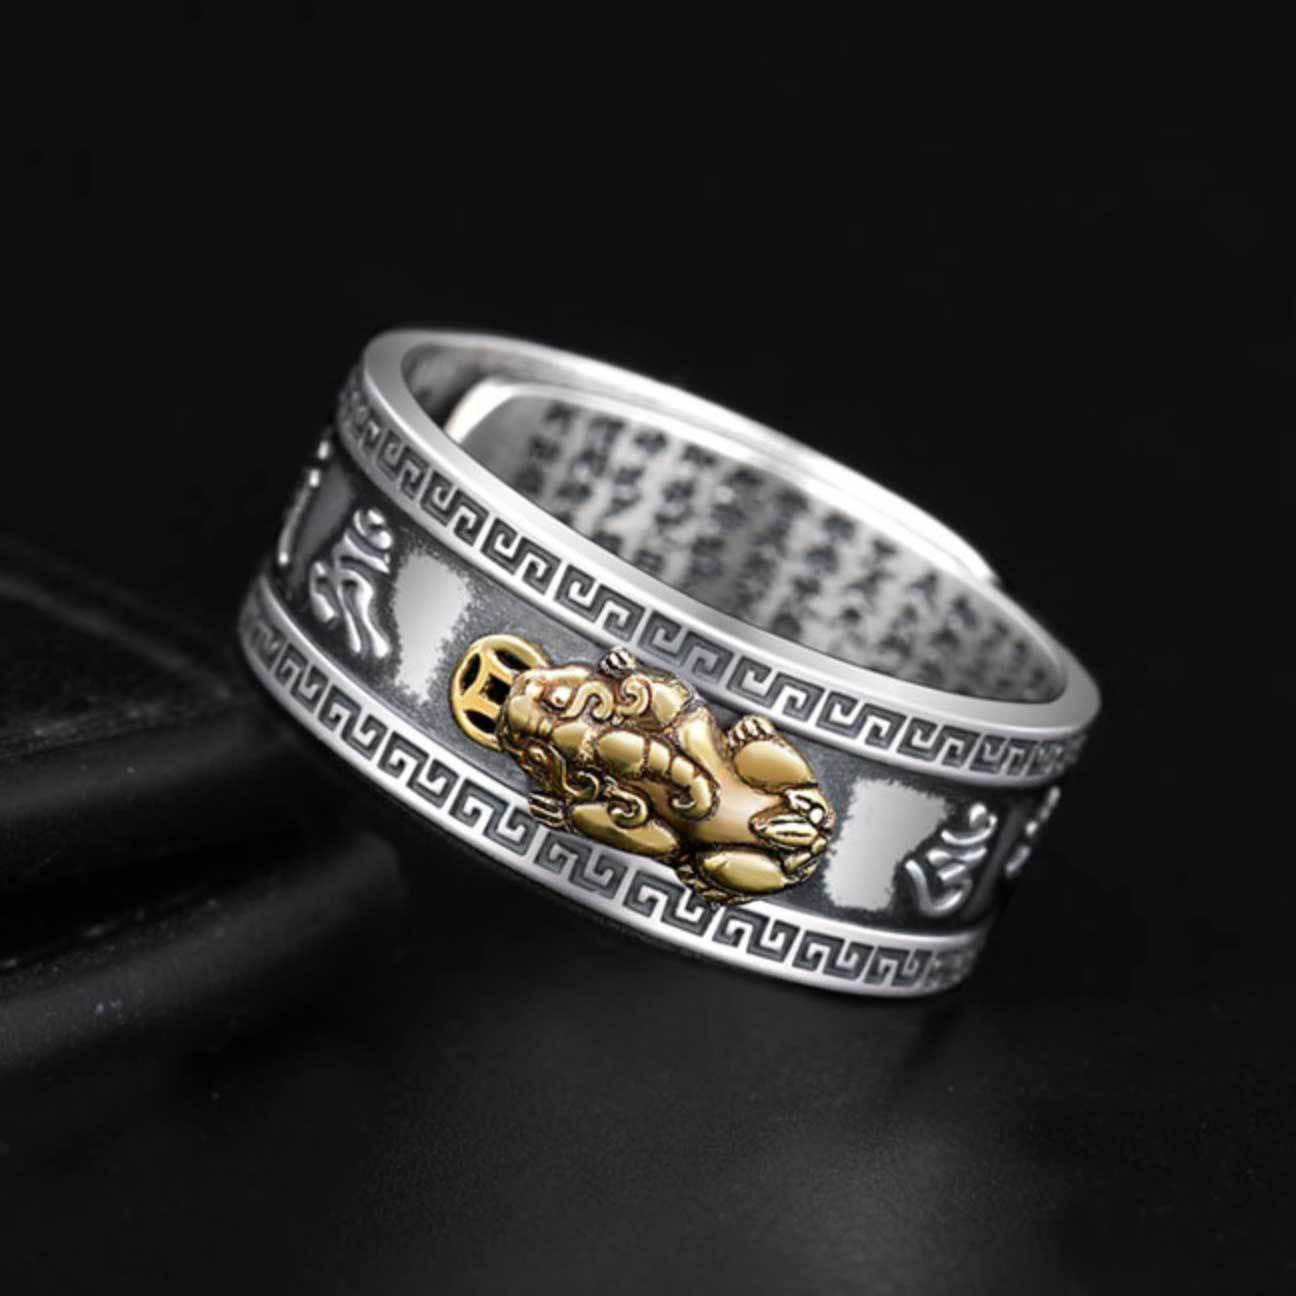 Feng Shui Pixiu Mantra Wealth & Protection Ring - Ring - Inner Wisdom Store